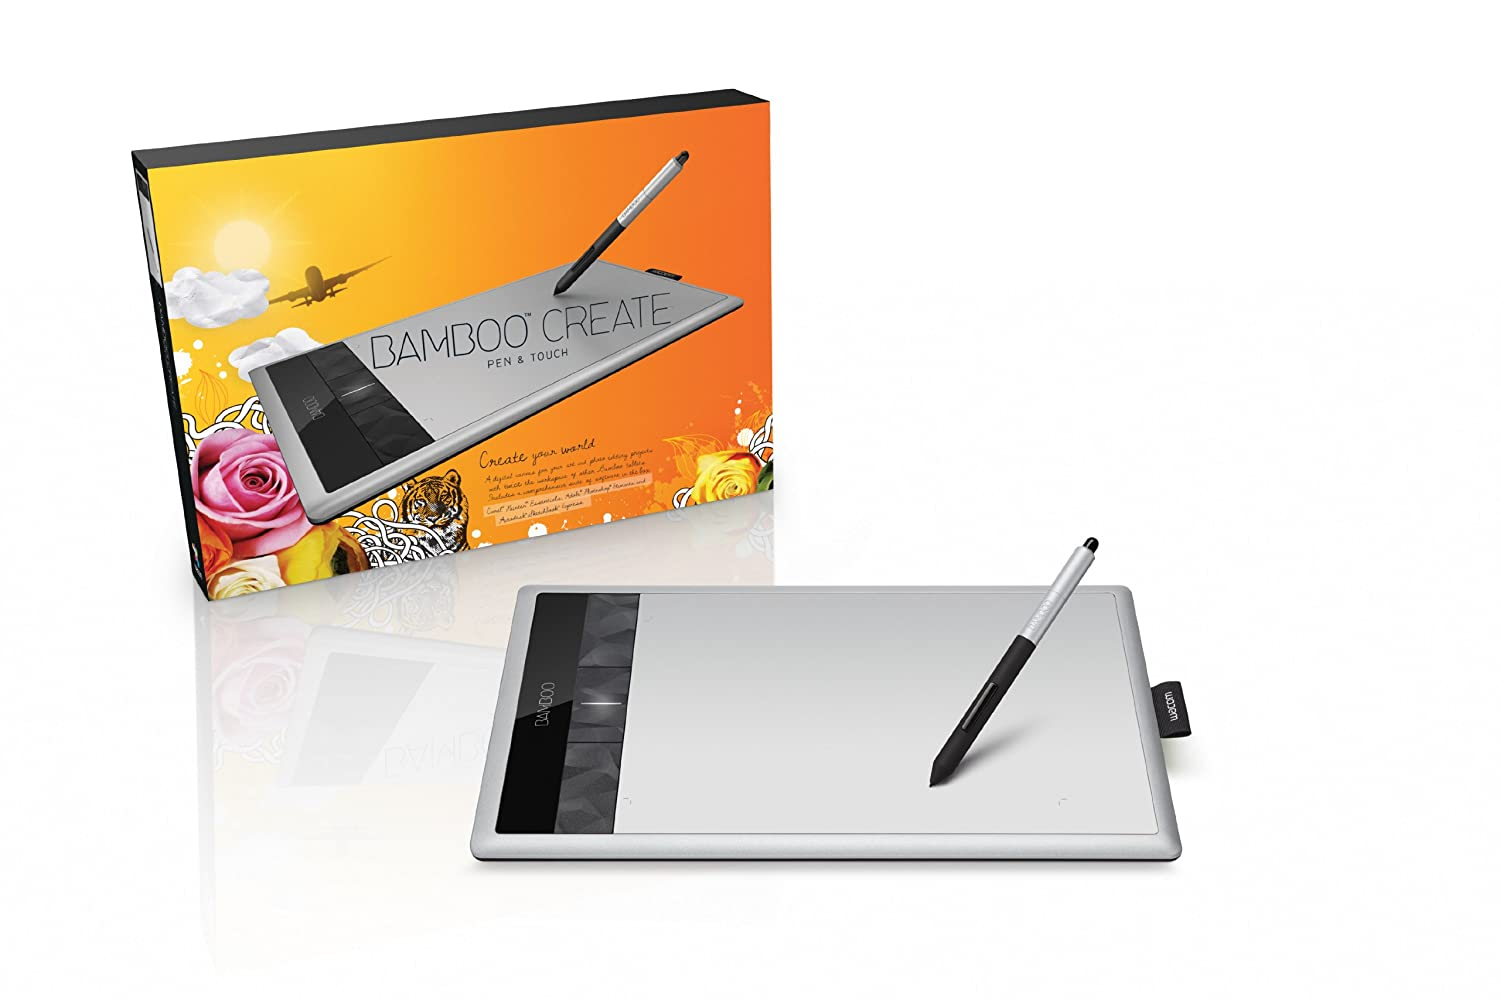 amazon com wacom bamboo create pen and touch tablet cth670 rh amazon com Wacom Bamboo Packaging Old Wacom Bamboo Fun